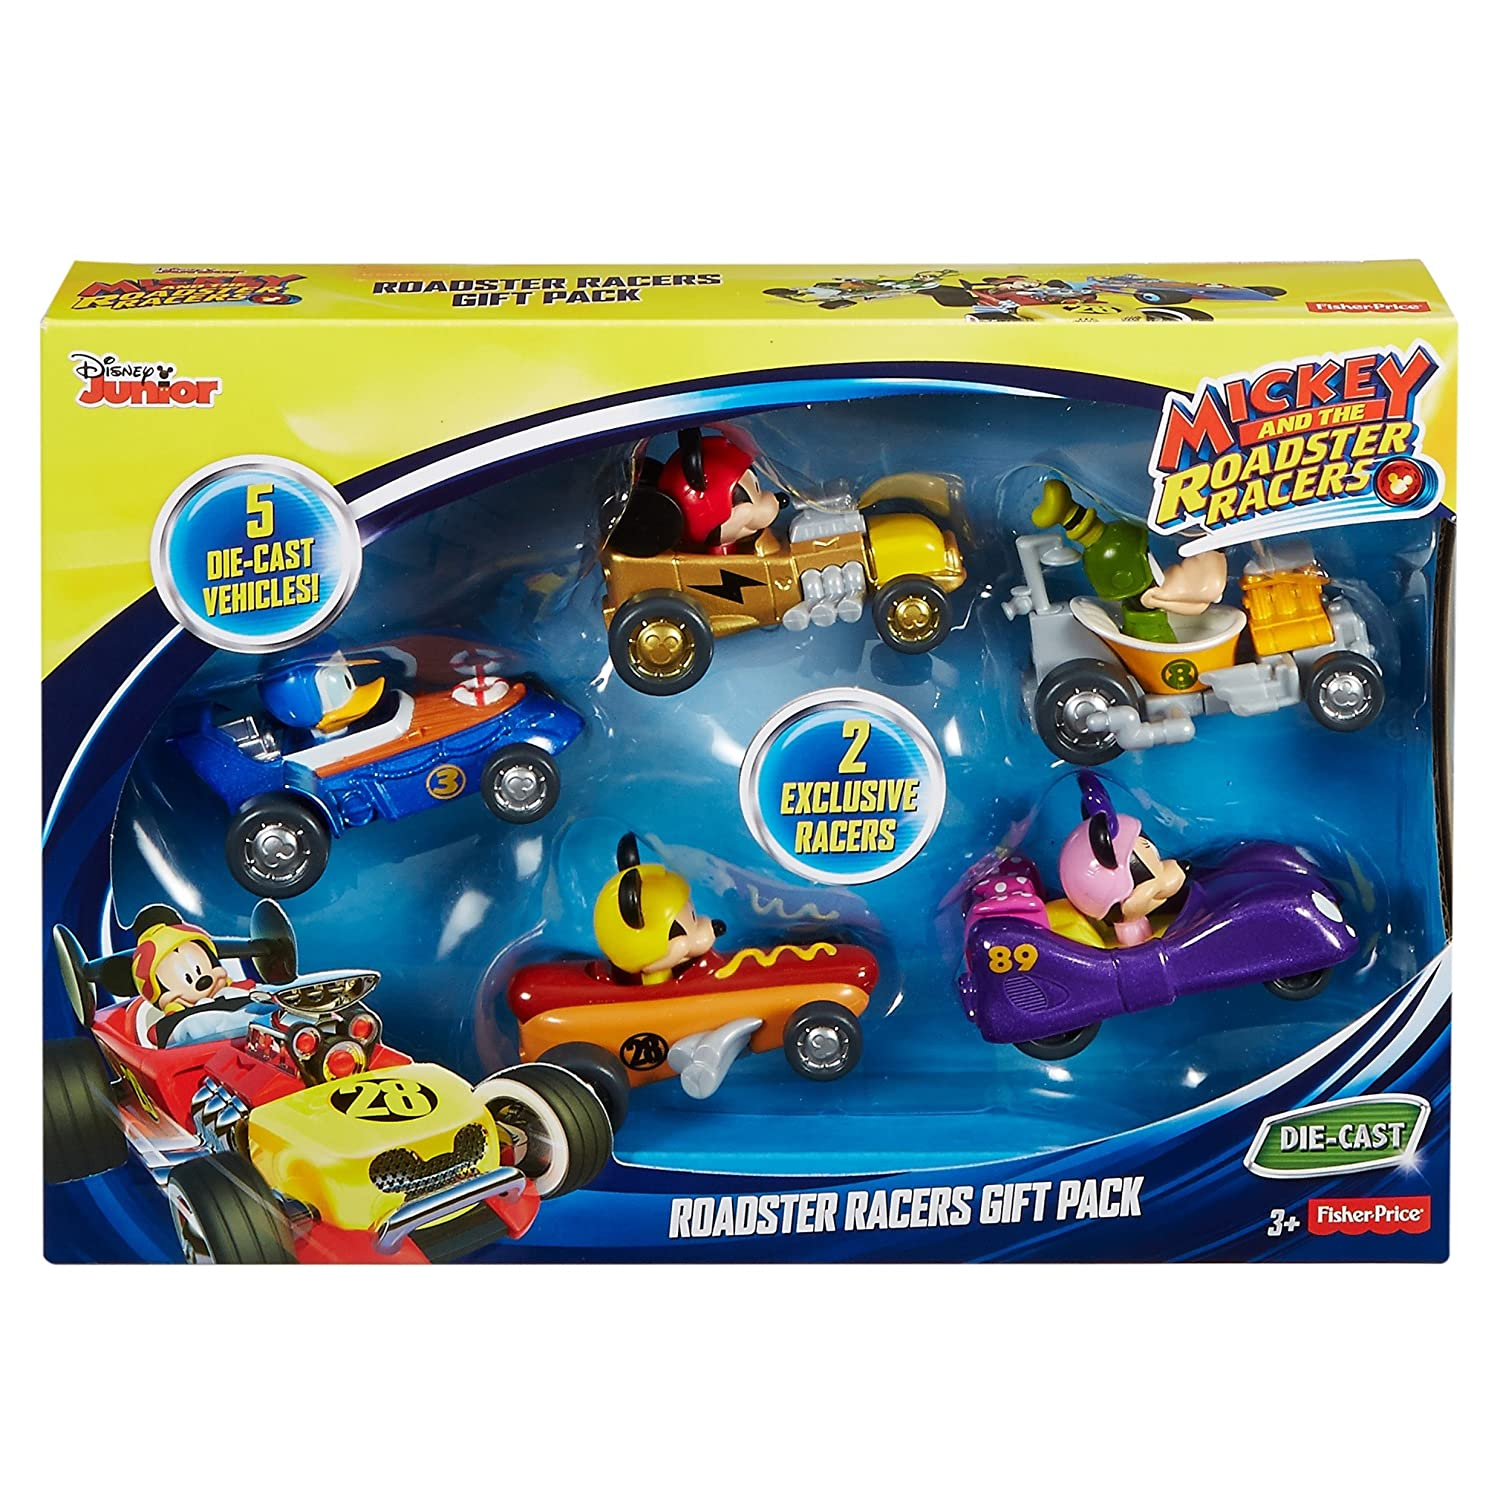 Amazon.com: Fisher-Price Disney Mickey and The Roadster Racers Vehicles Gift Pack: Toys & Games